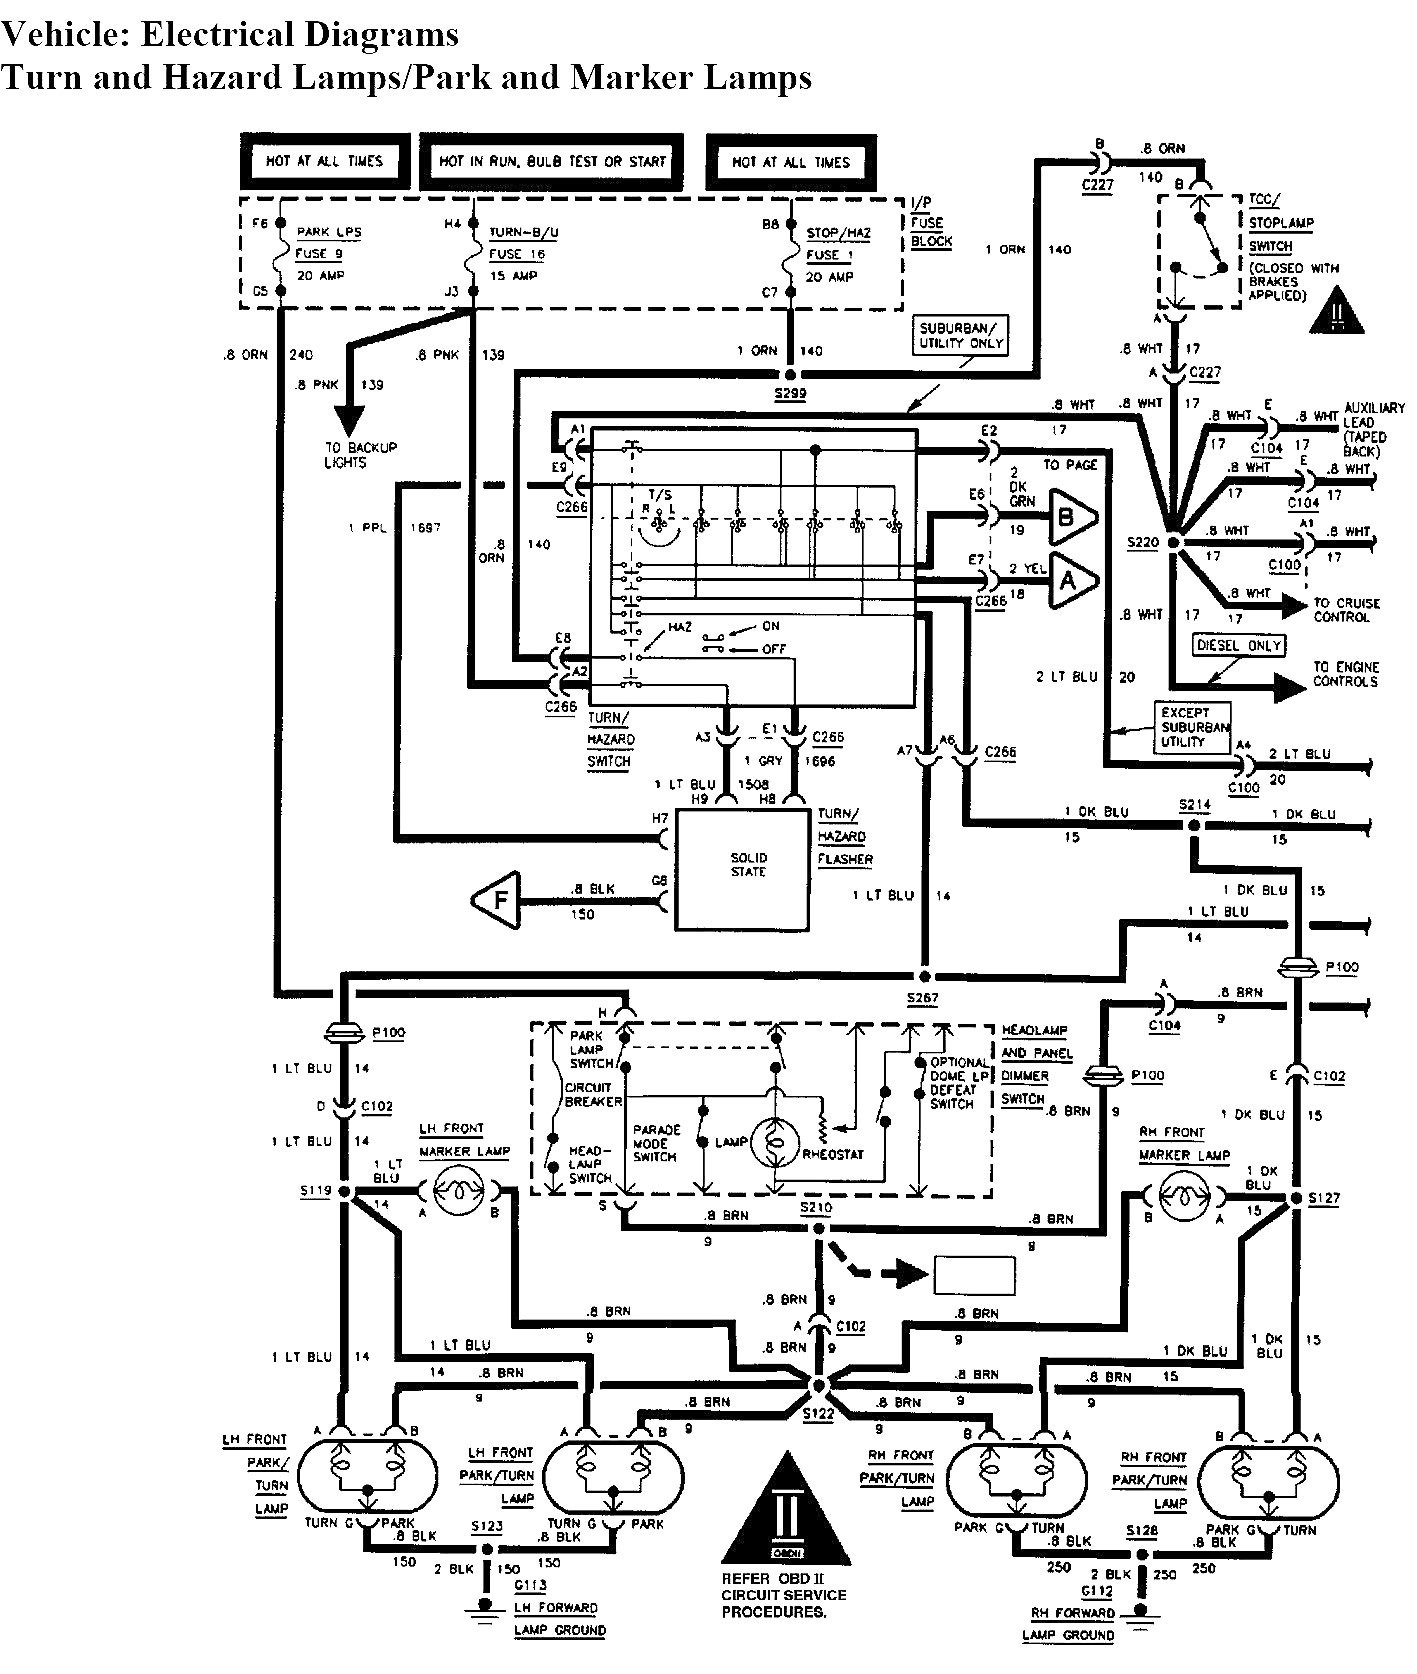 2006 chevy silverado tail light wiring diagram